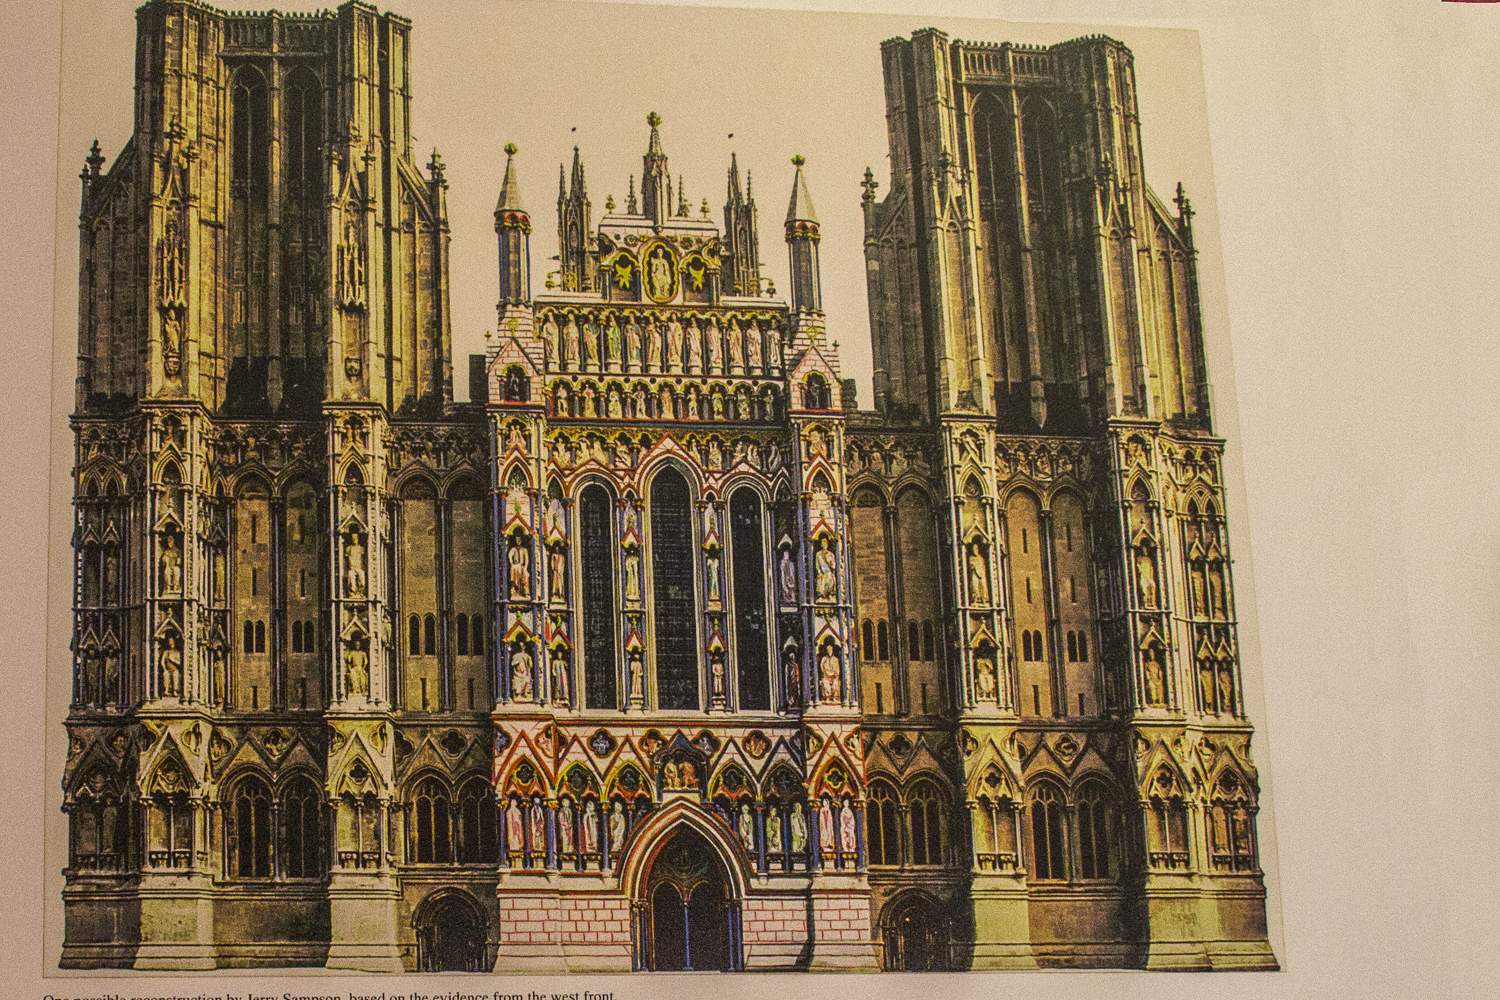 Original painted exterior of the Cathedral in Wells, Somerset, England    20185441